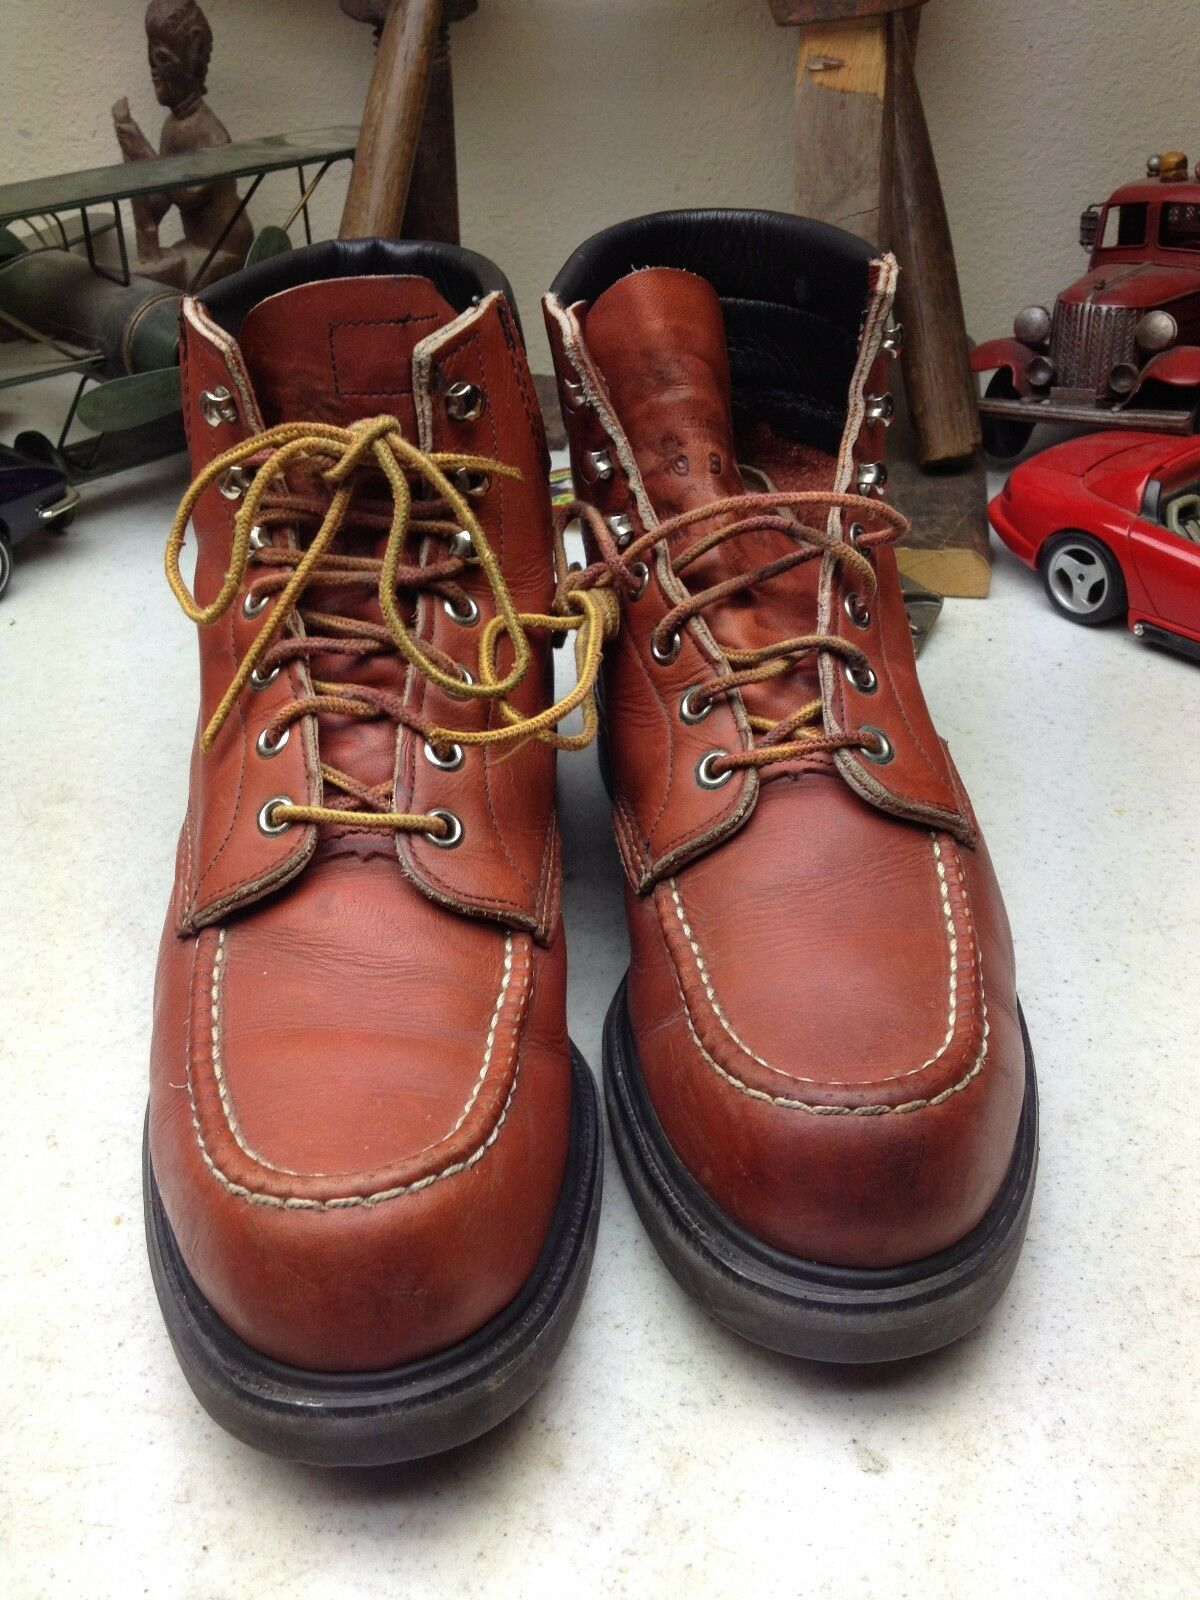 VINTAGE LACE ROT WING USA OXBLOOD LEATHER LACE VINTAGE UP WORK CHORE PACKER MOC TOE Stiefel 9B 241e06